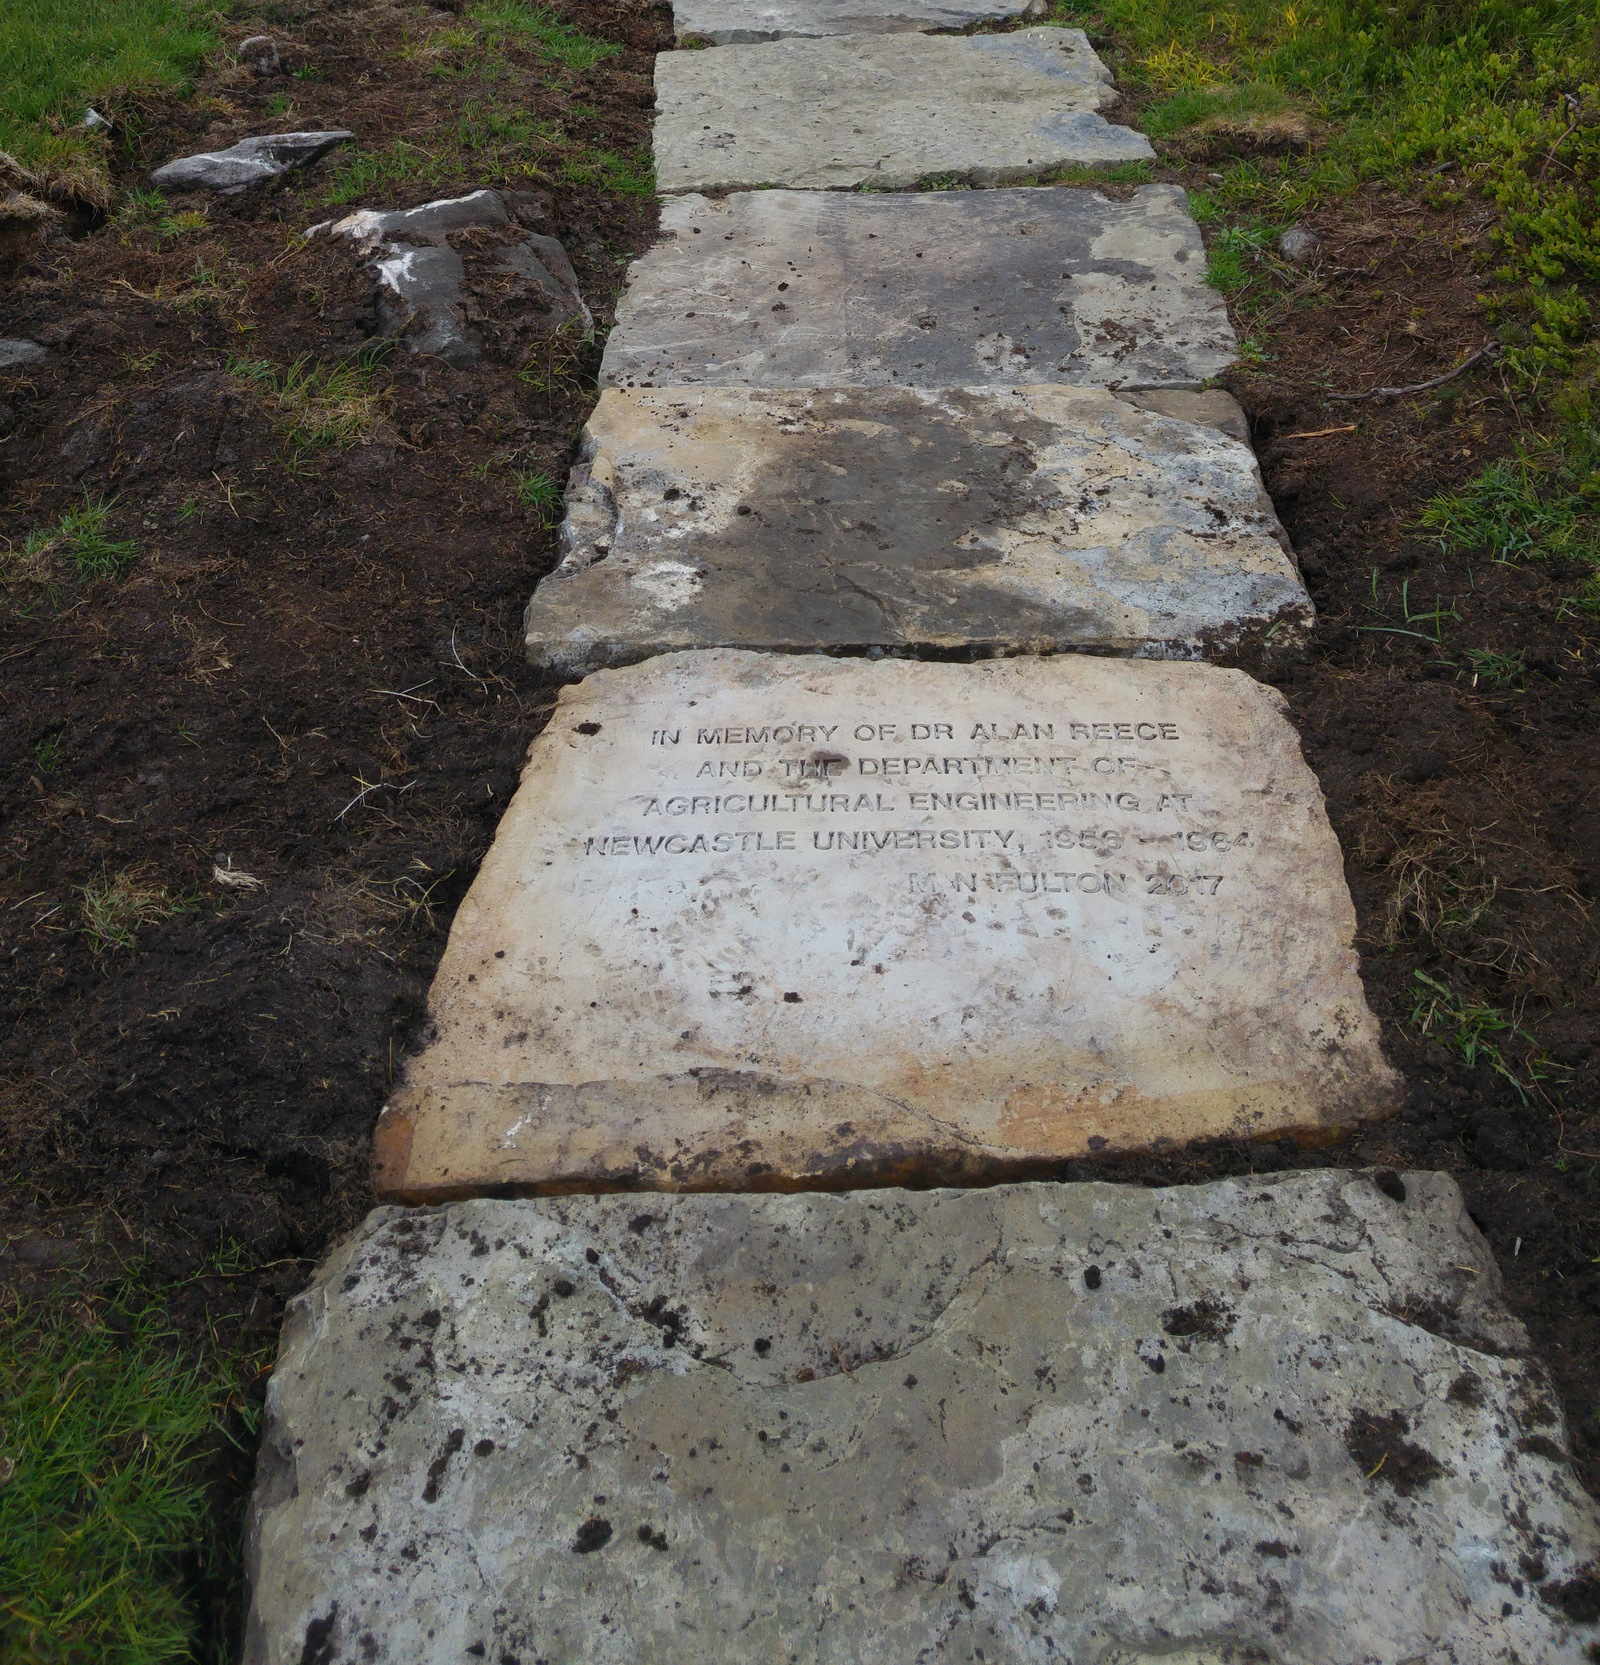 Commemorative stone at Simonside